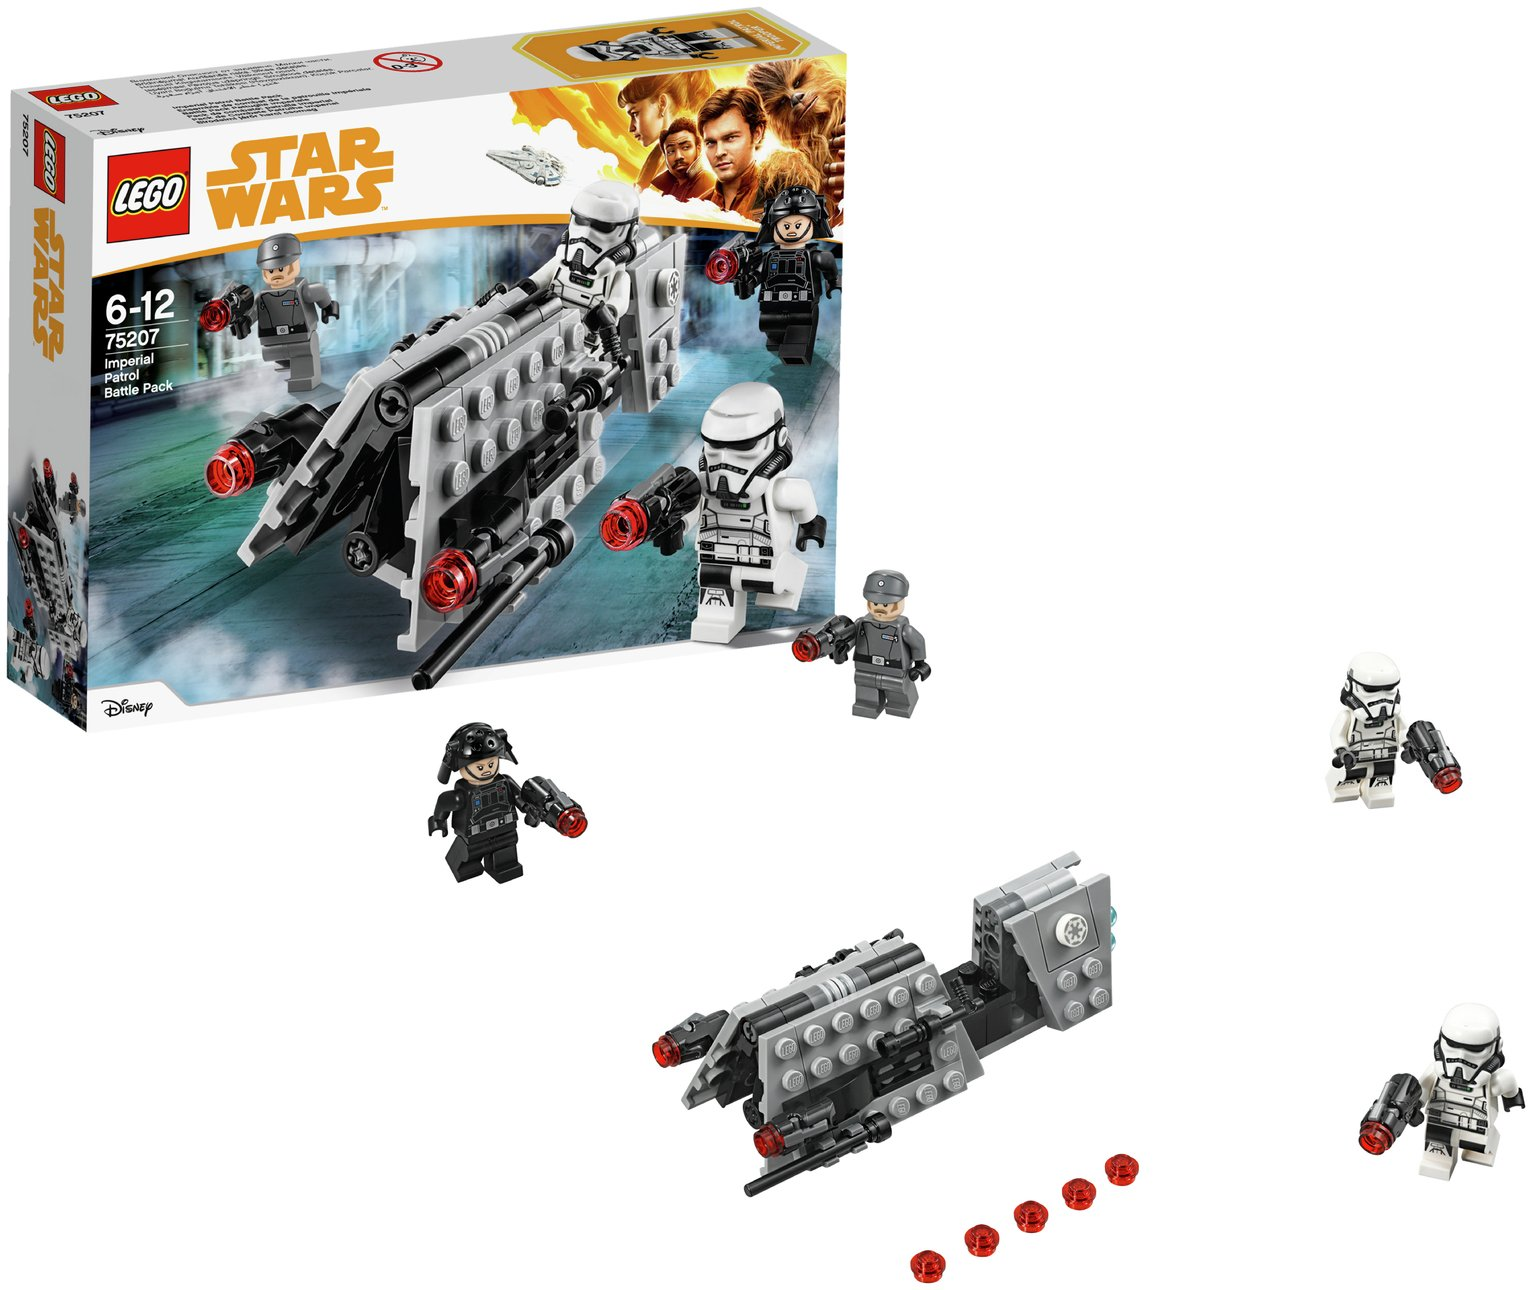 LEGO Star Wars Han Solo Imperial Patrol Battle Pack - 75207